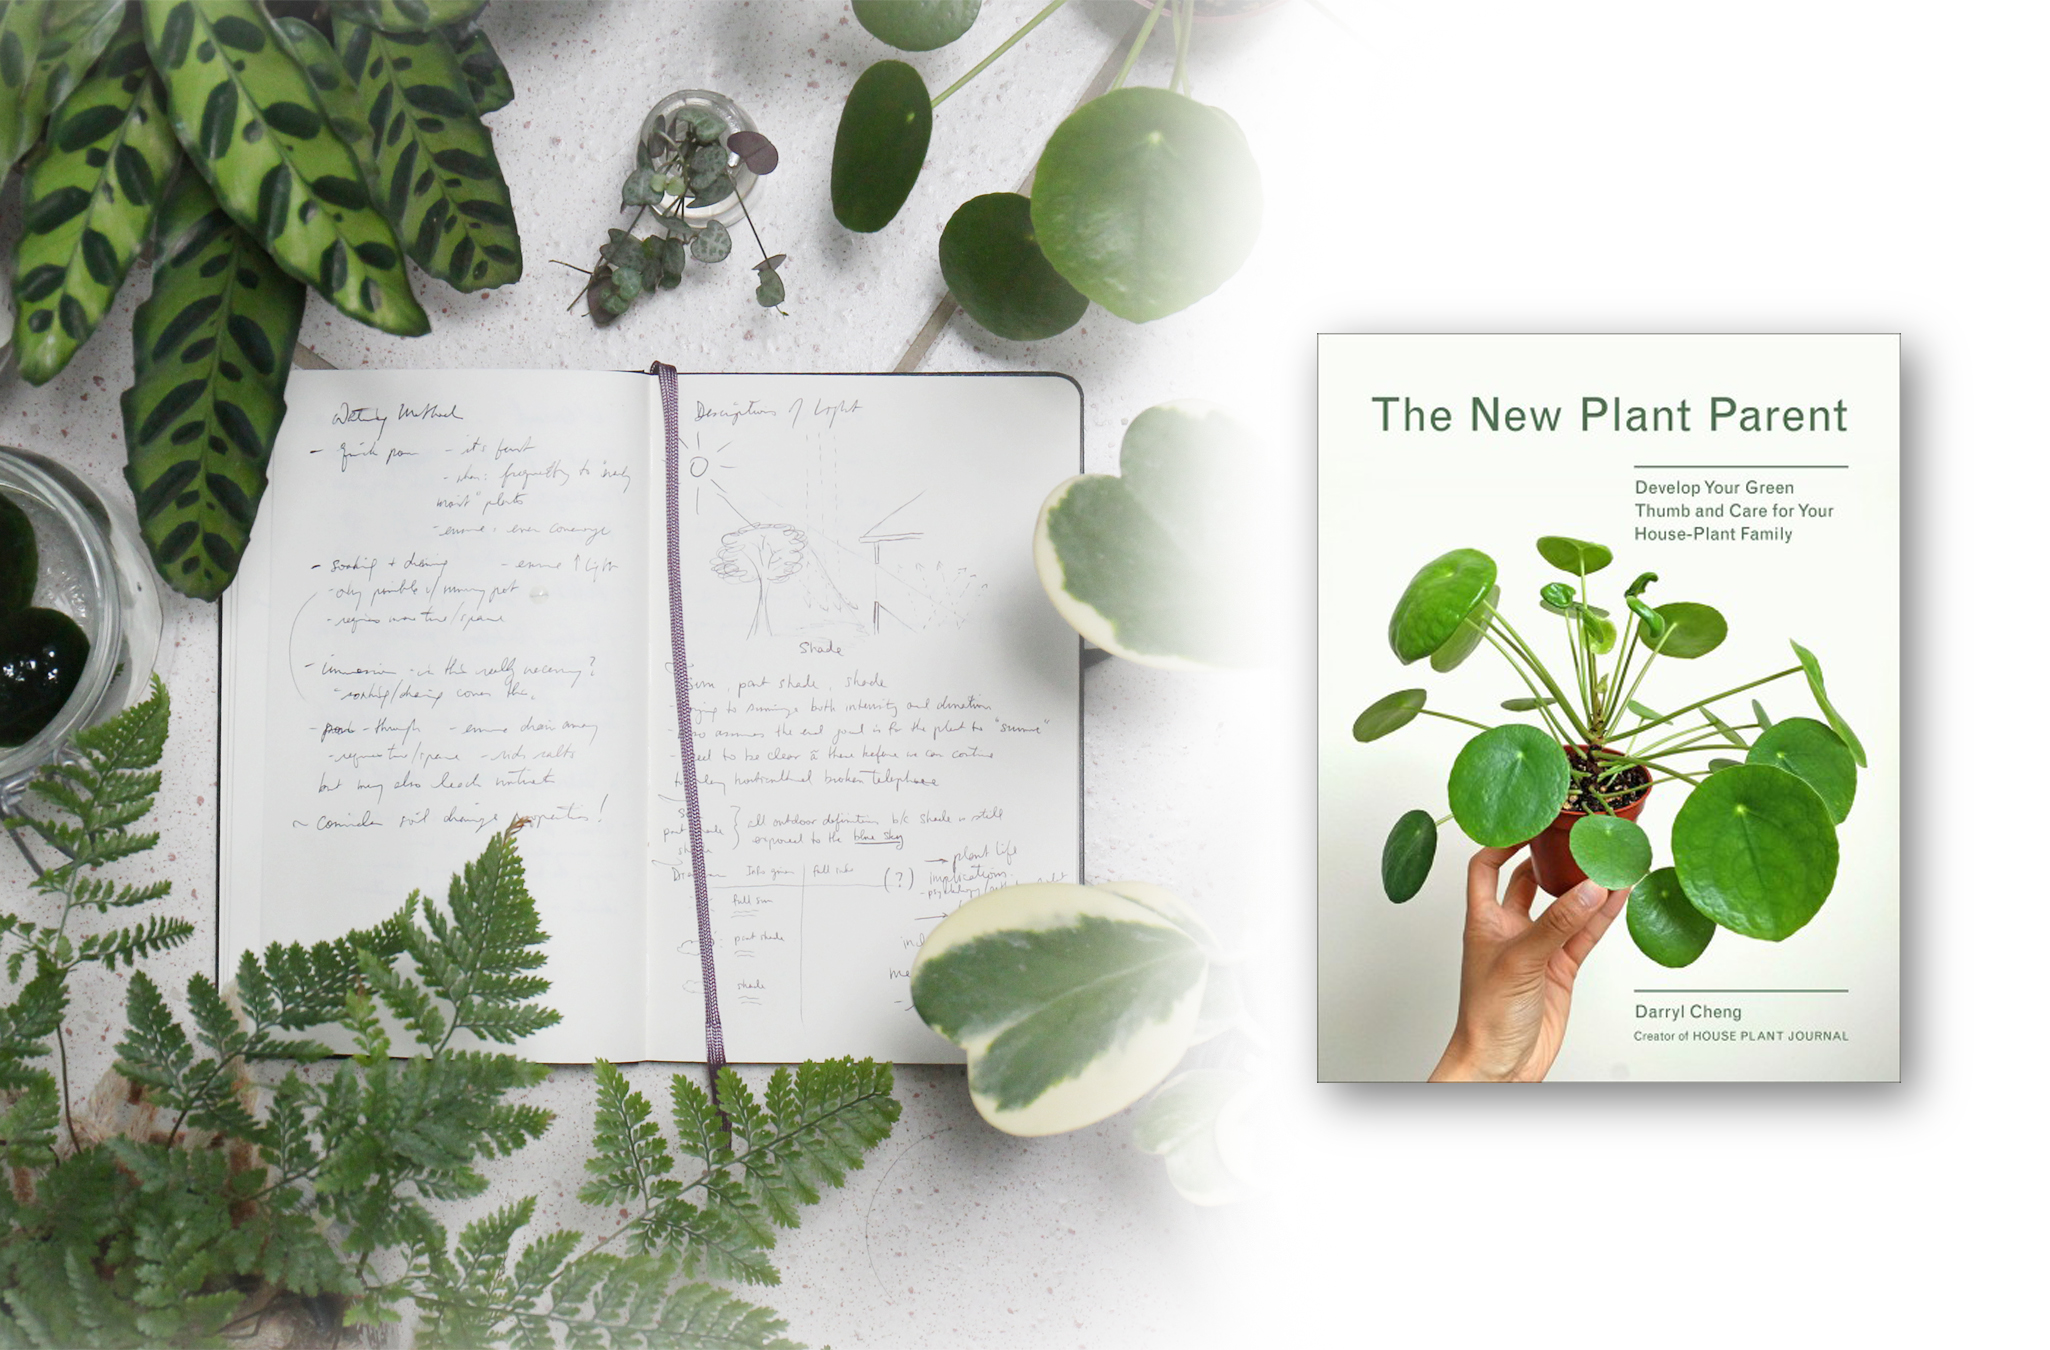 Develop Your Green Thumb and Care for Your House-Plant Family New Plant Parent